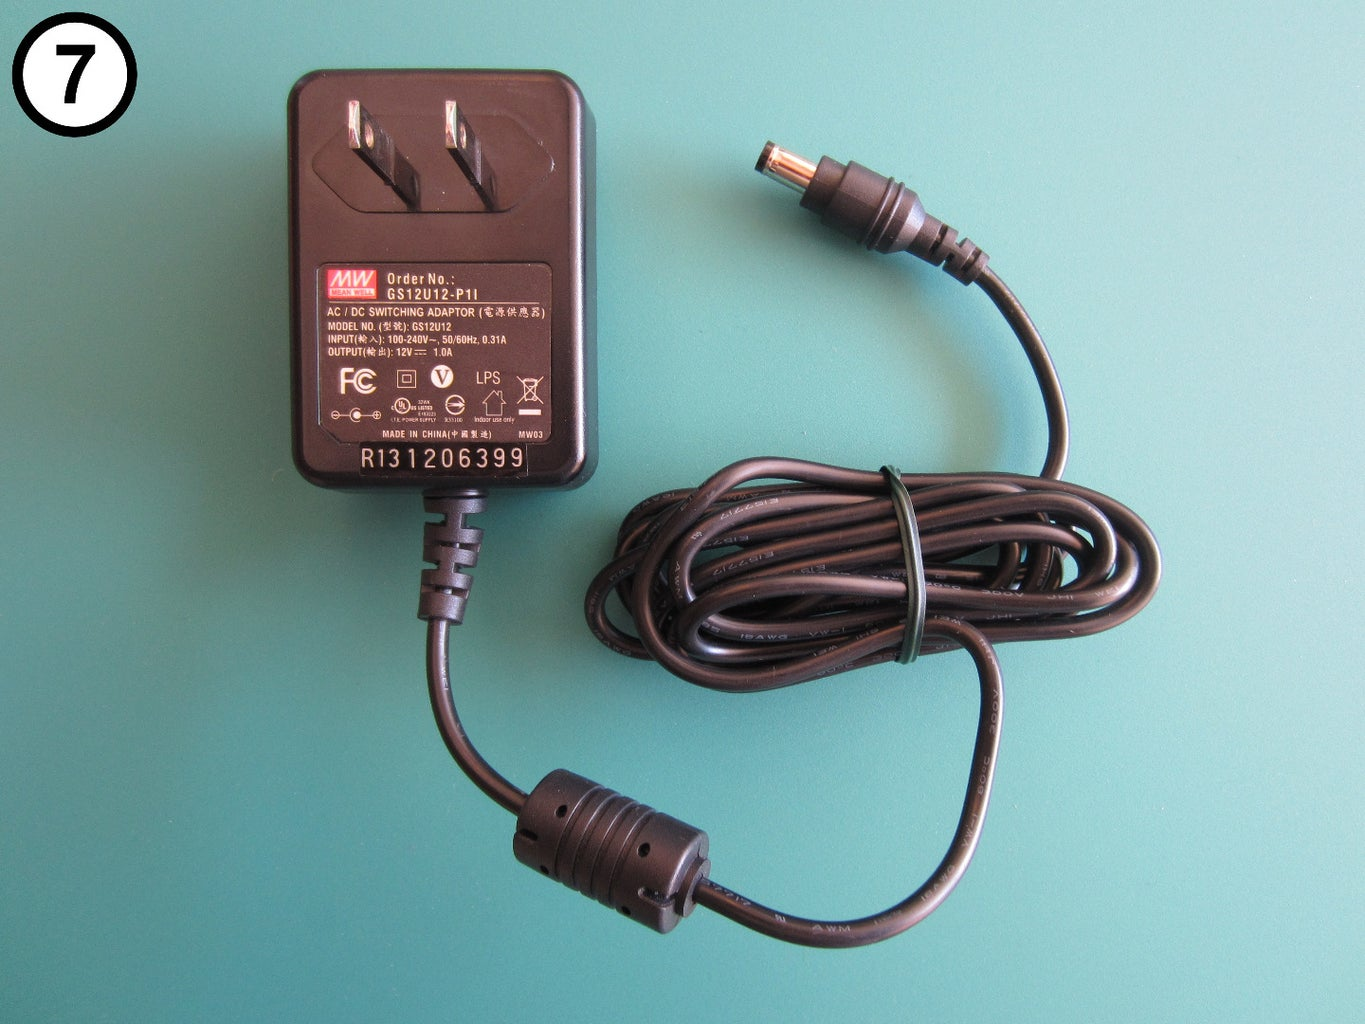 Attach the WiFi Adapter and Power Cables